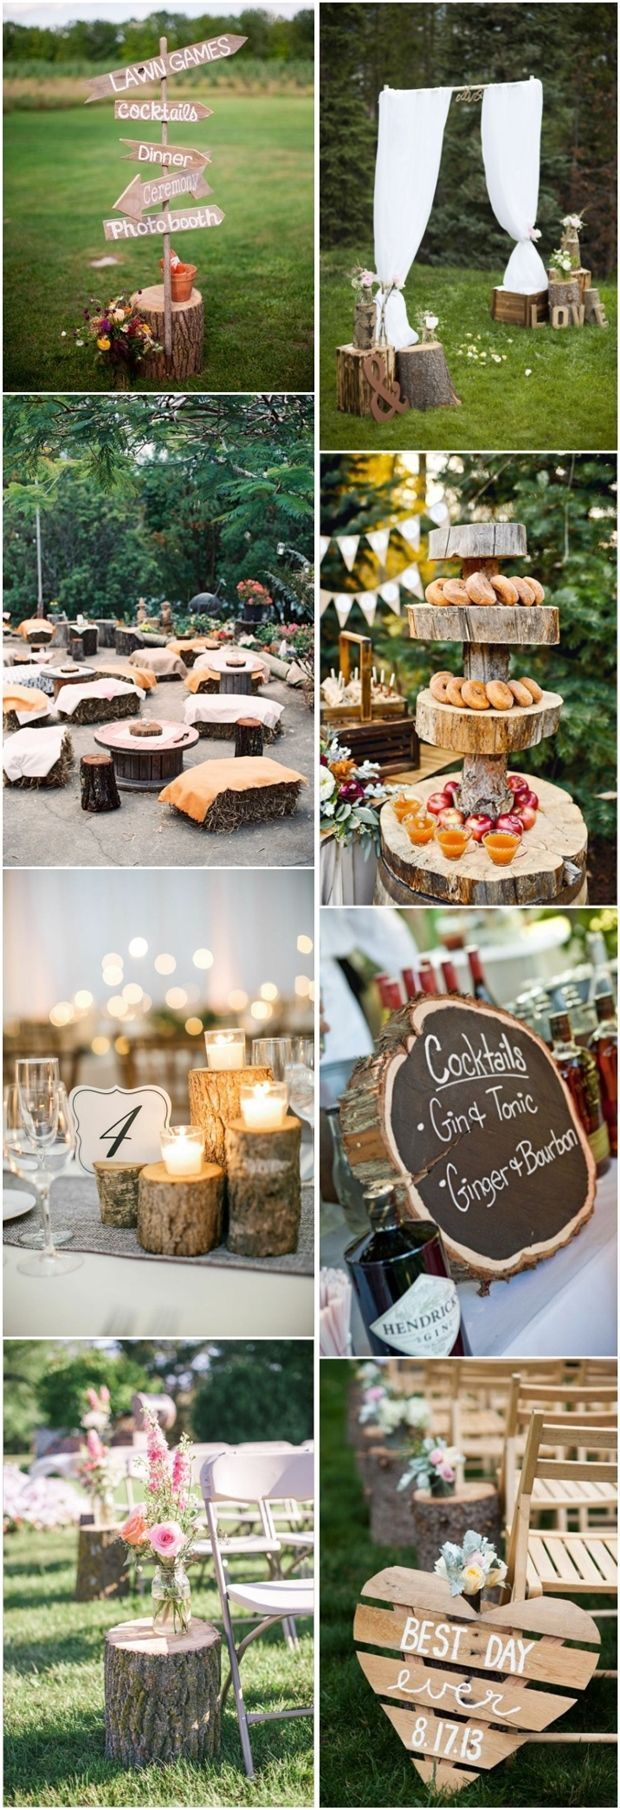 Rustic wedding ideas  #fourmilehistoricpark